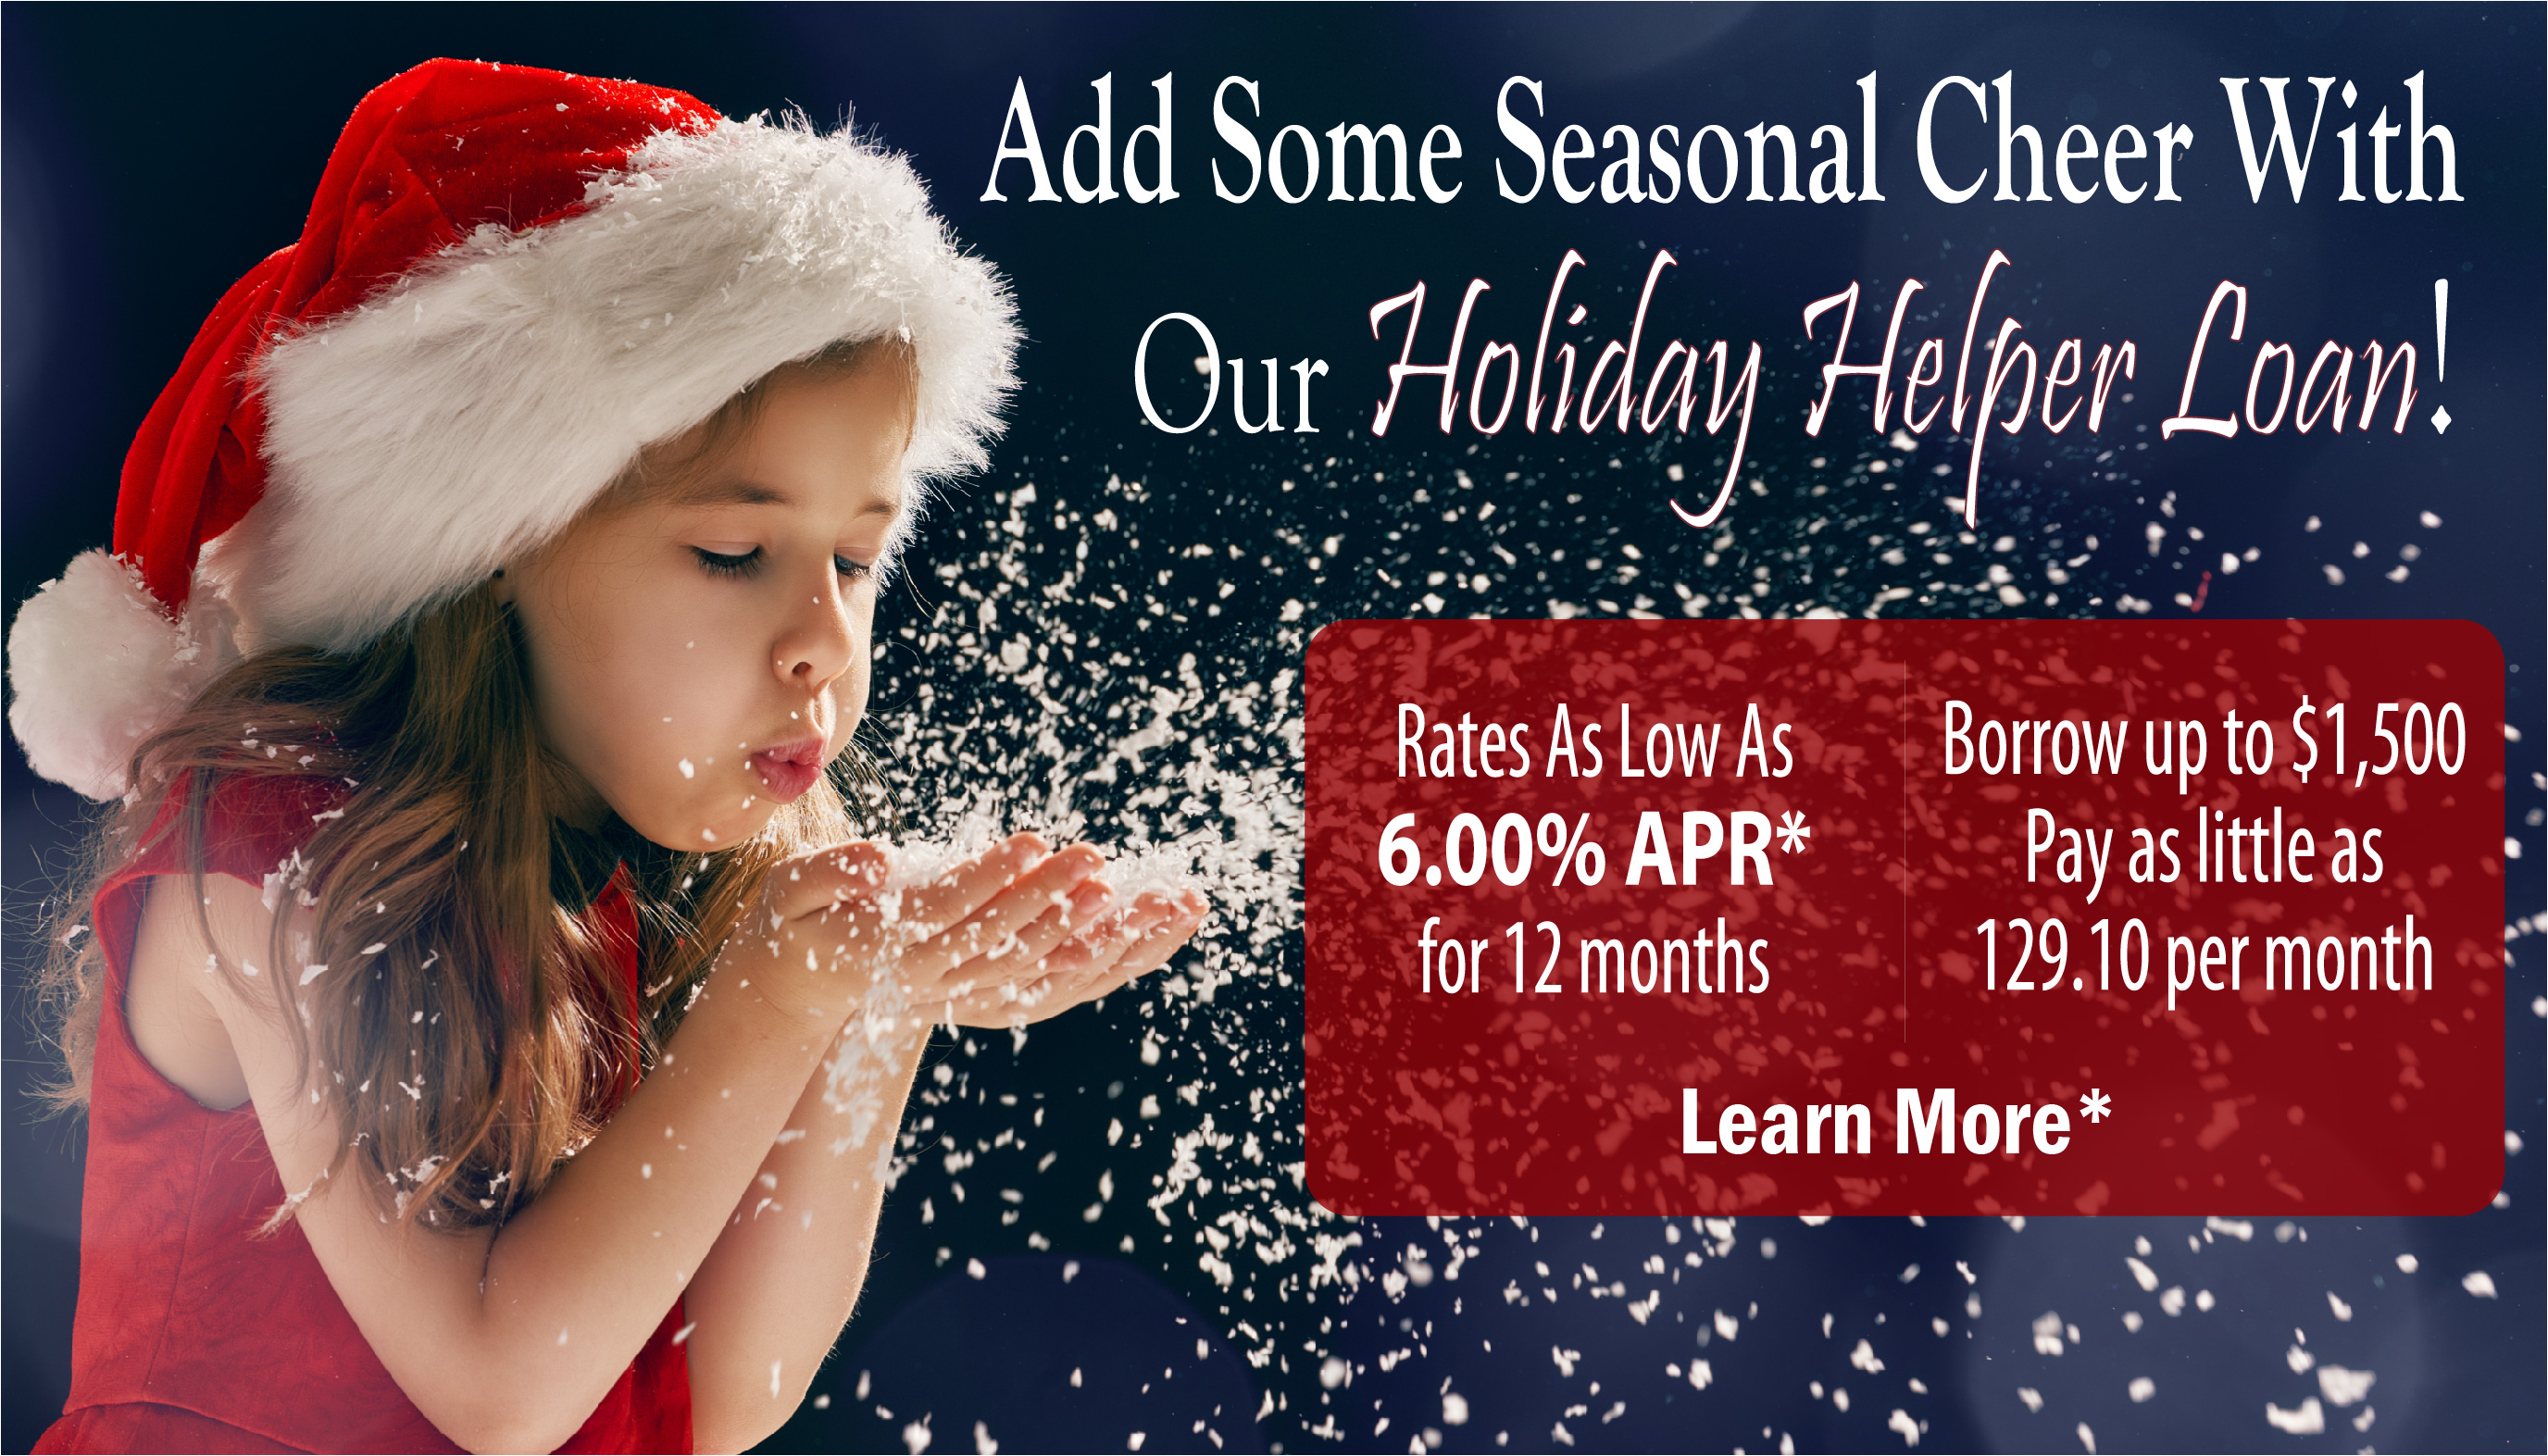 Add Some Seasonal Cheer With Our Holiday Helper Loan